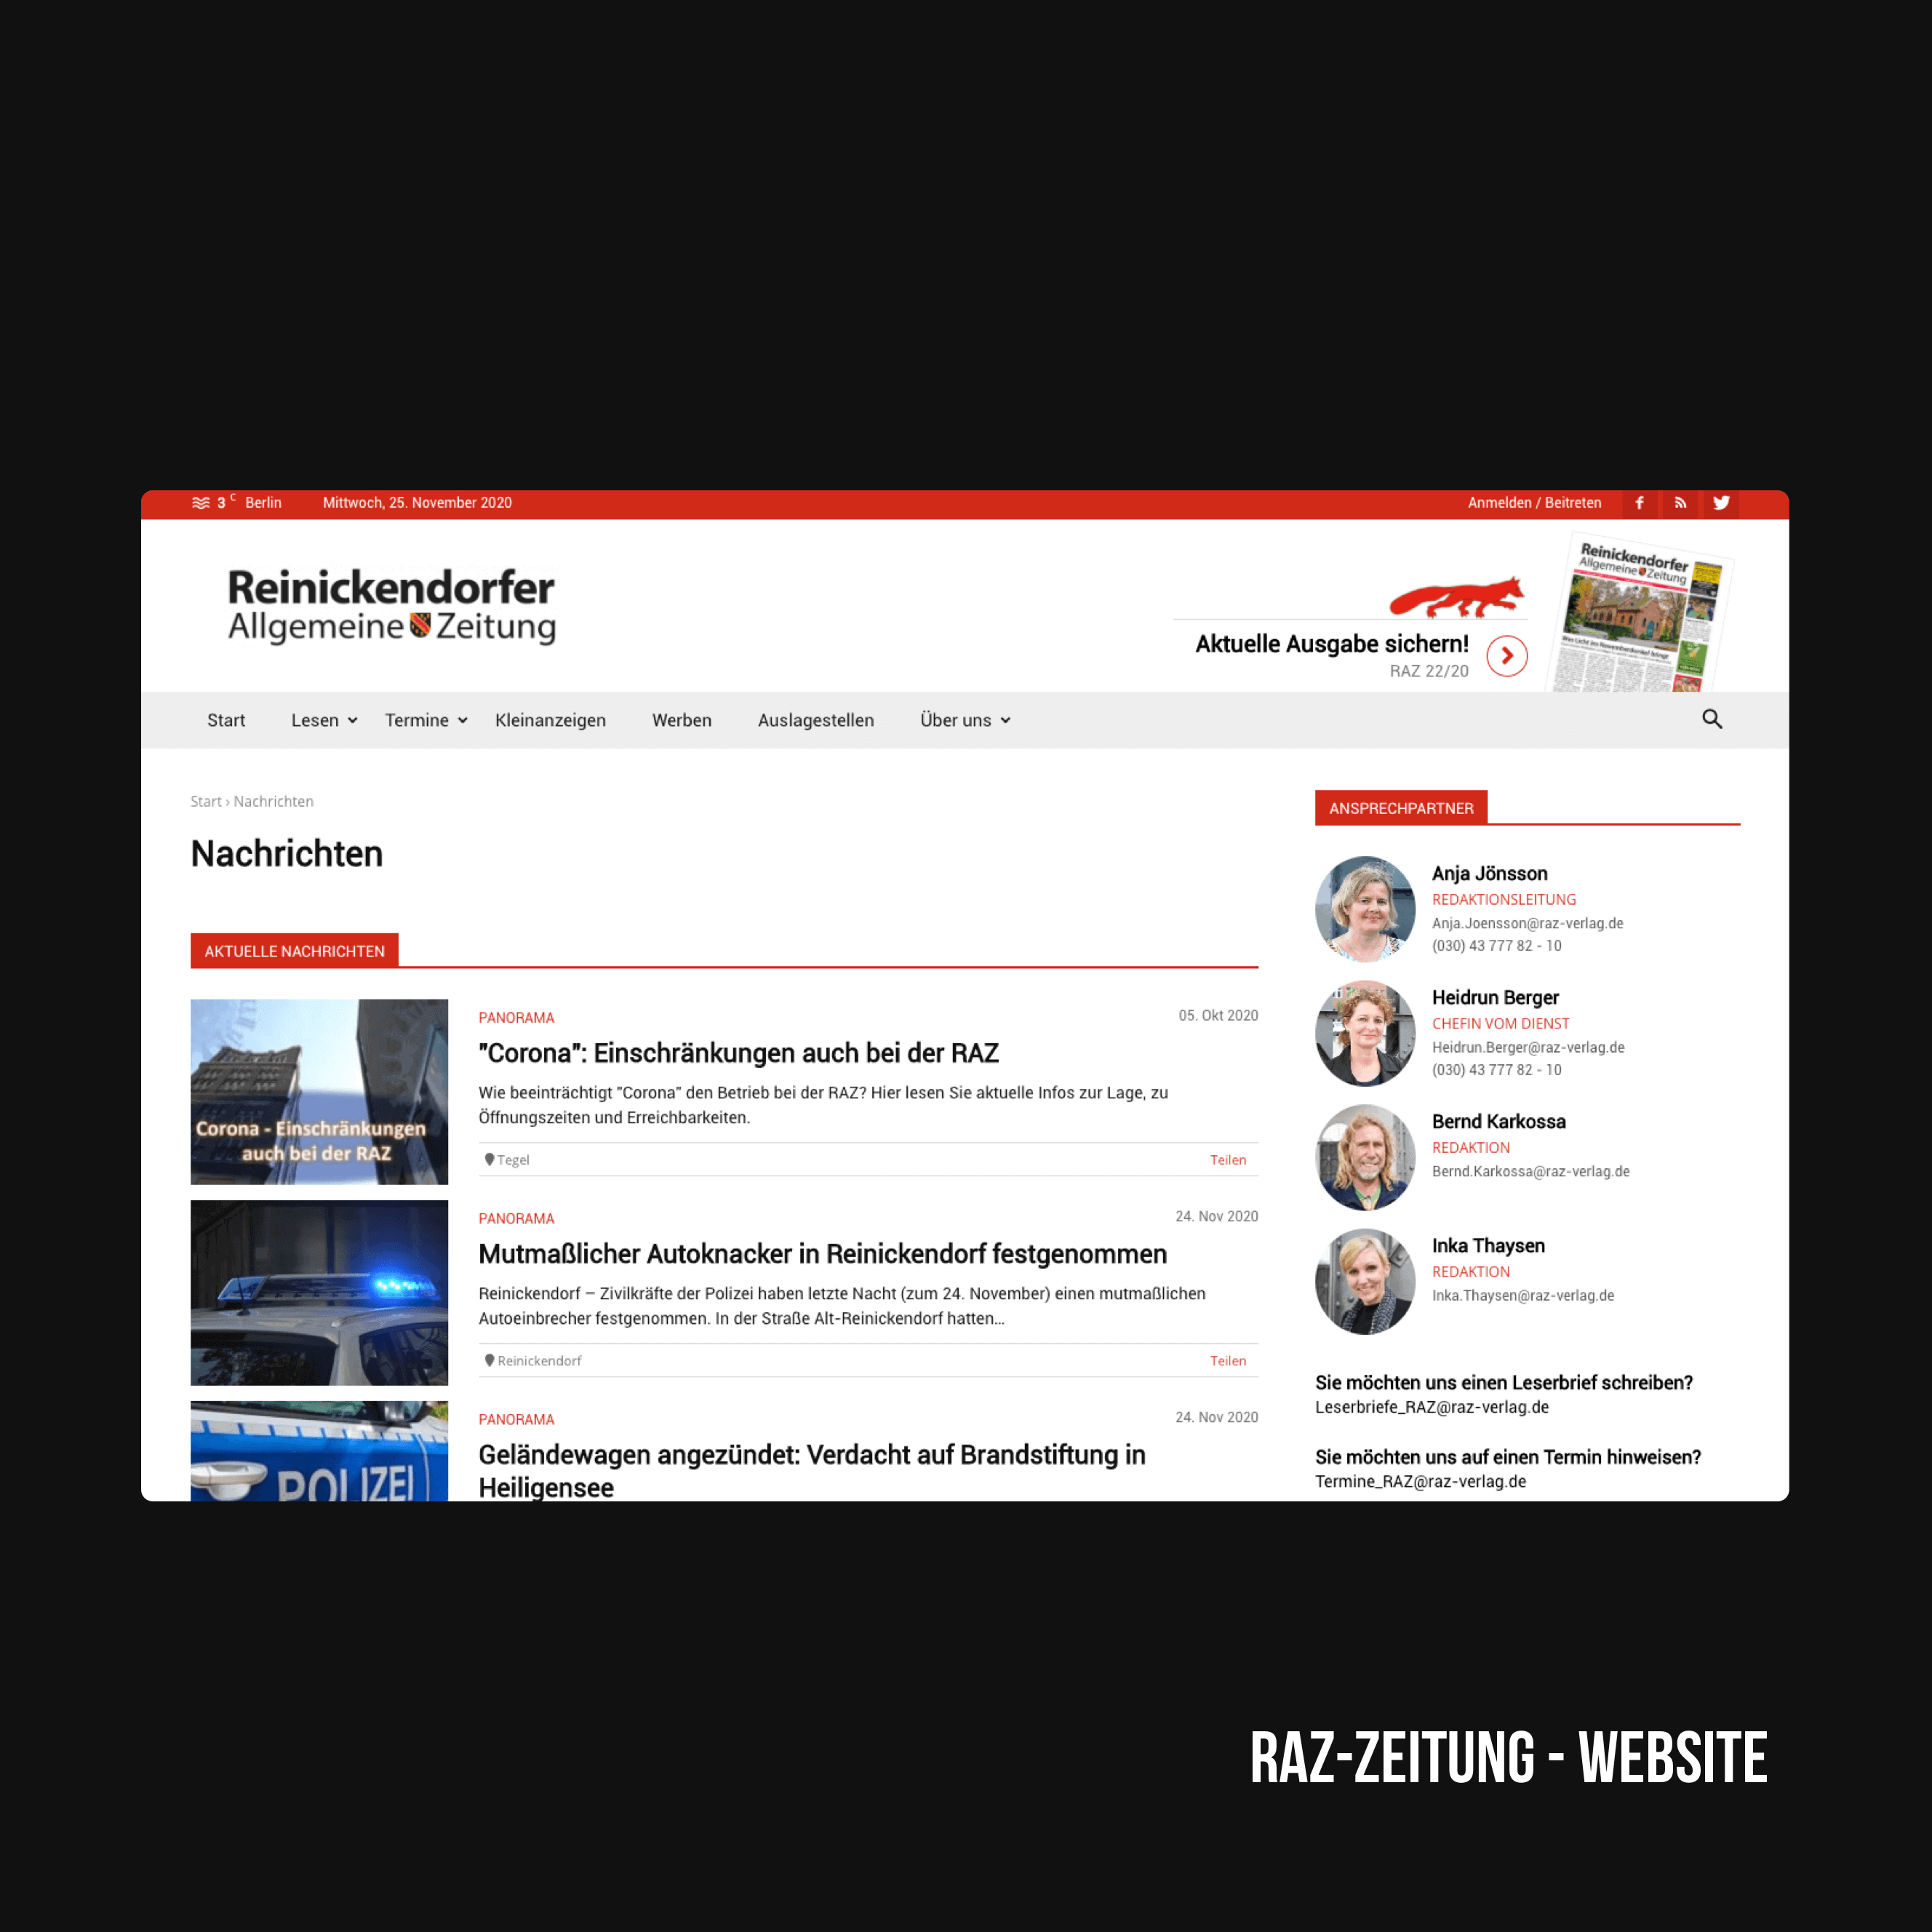 Online Marketing Agentur aus Berlin - BxW - Projekte und Referenzen